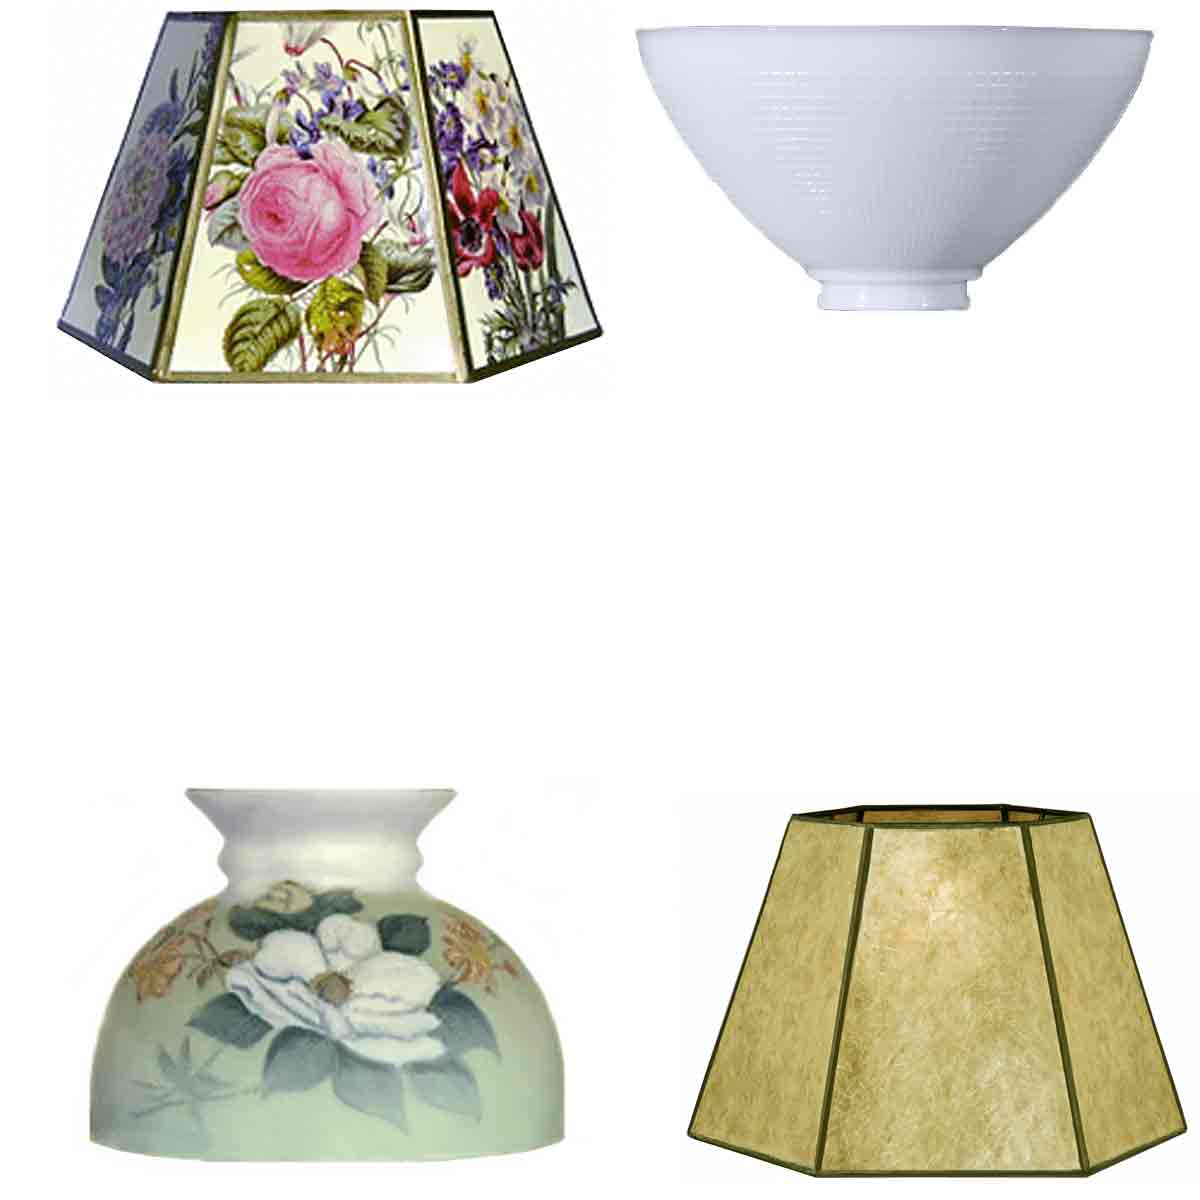 Replacement Lampshades for table and floor lamps